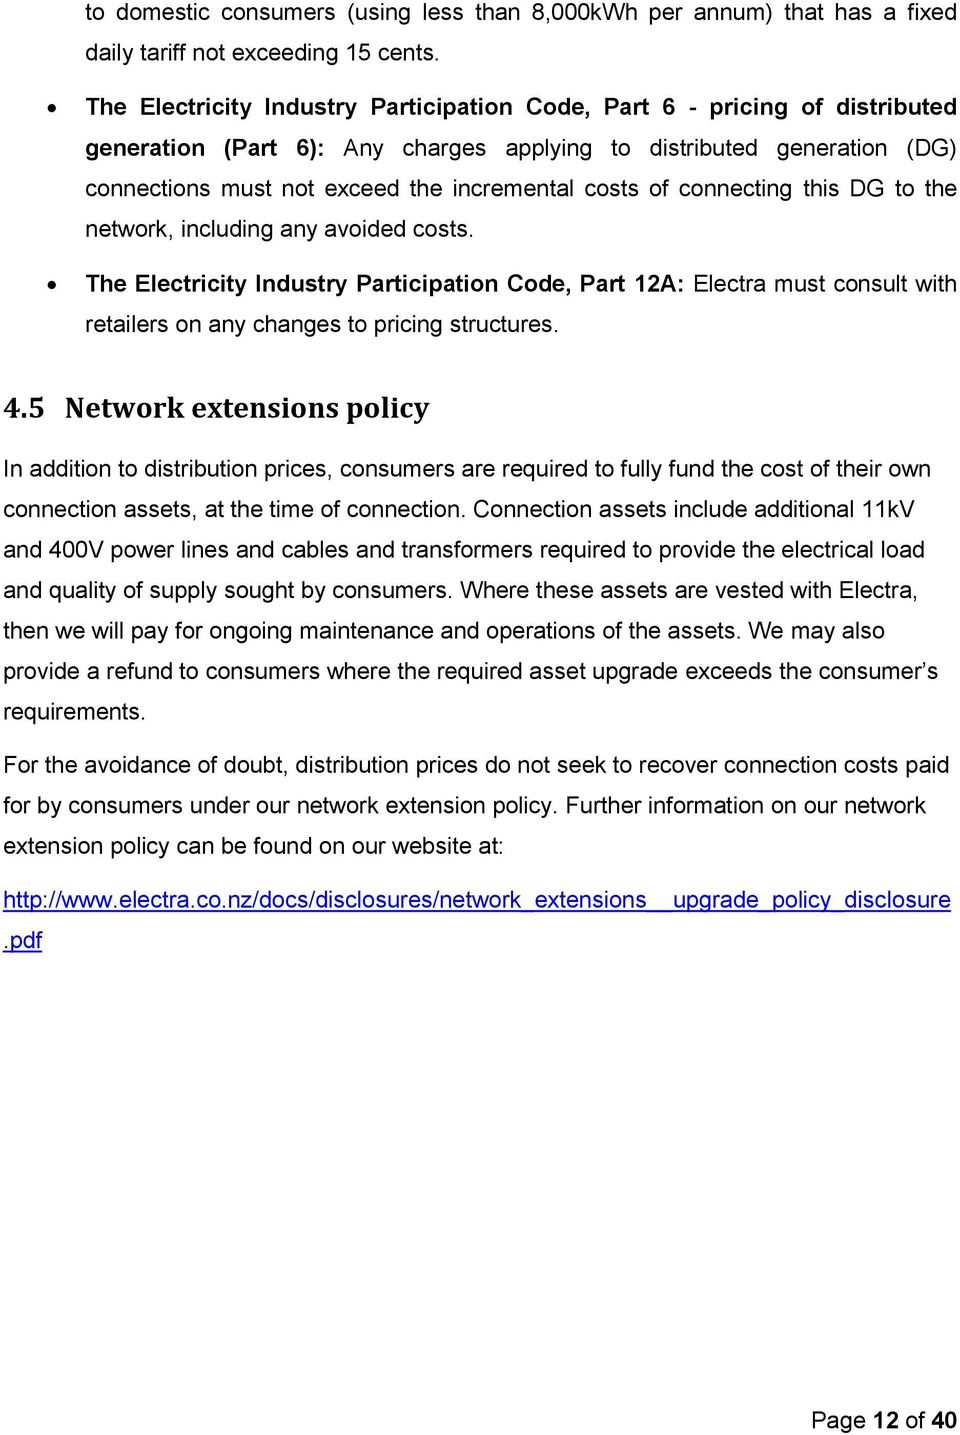 of connecting this DG to the network, including any avoided costs. The Electricity Industry Participation Code, Part 12A: Electra must consult with retailers on any changes to pricing structures. 4.